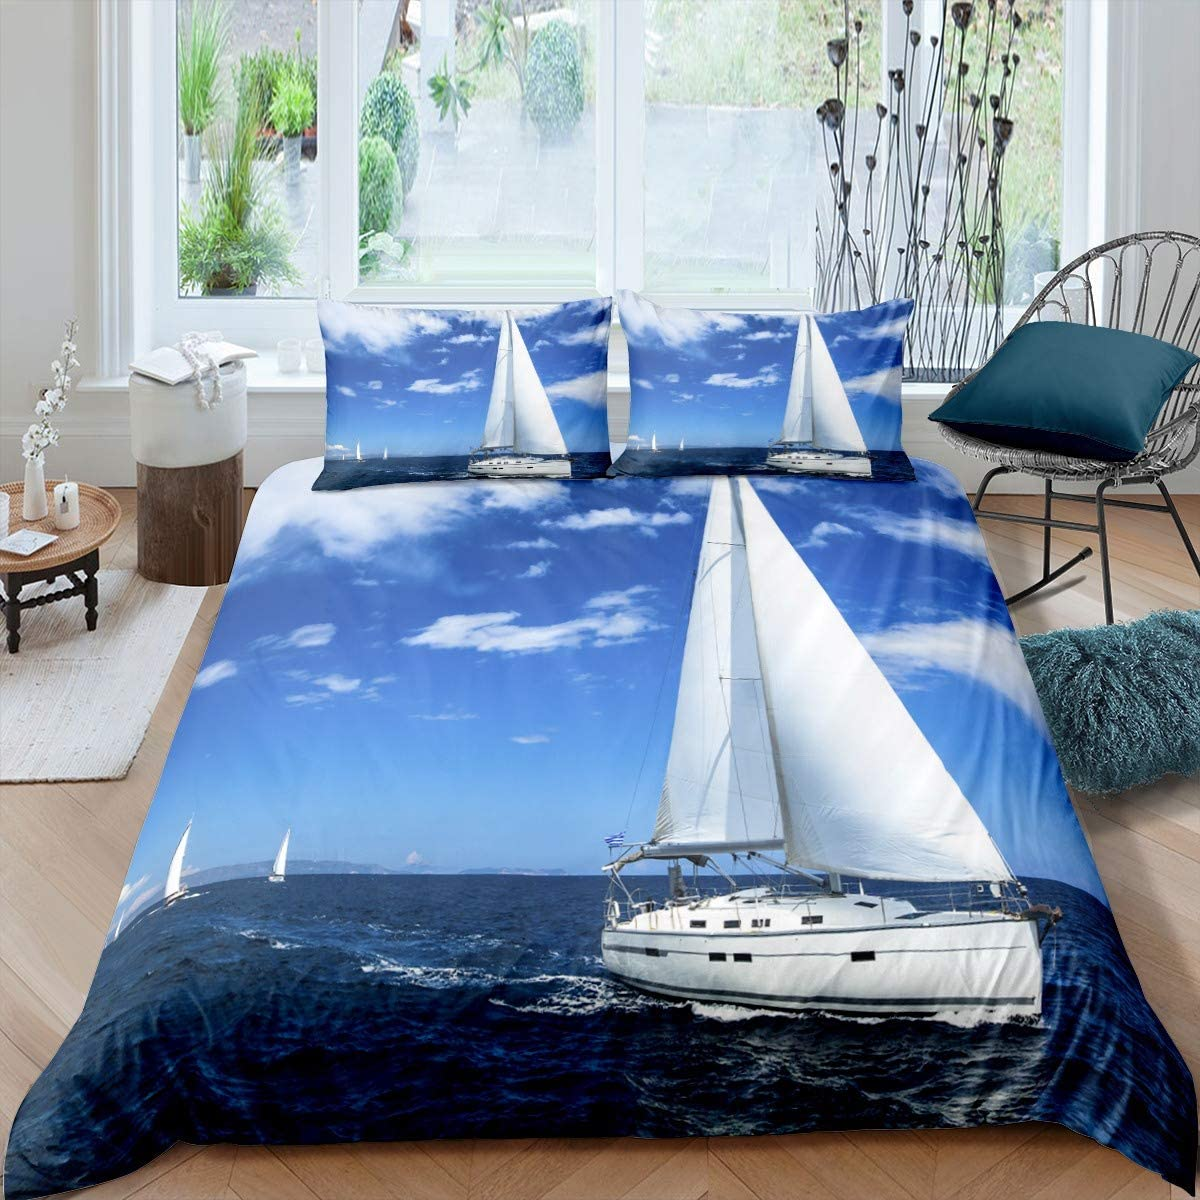 Full Size At the price of surprise Boat Duvet Cover Set Water Passenger Beddi Memphis Mall Luxury Ship